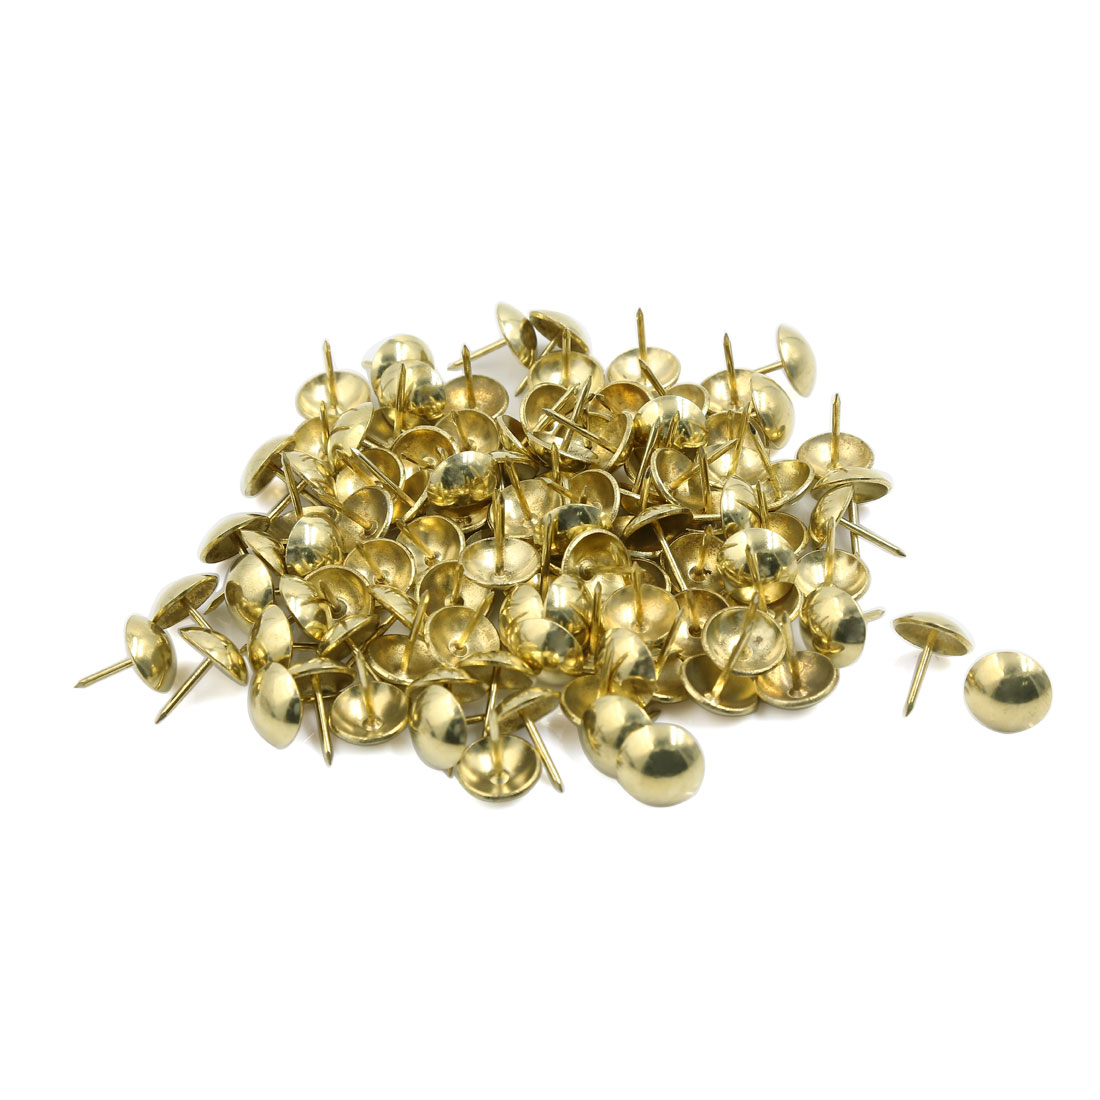 Office Home School Message Boards Push Pin Thumb Tacks Gold Tone 15mm Dia 100pcs